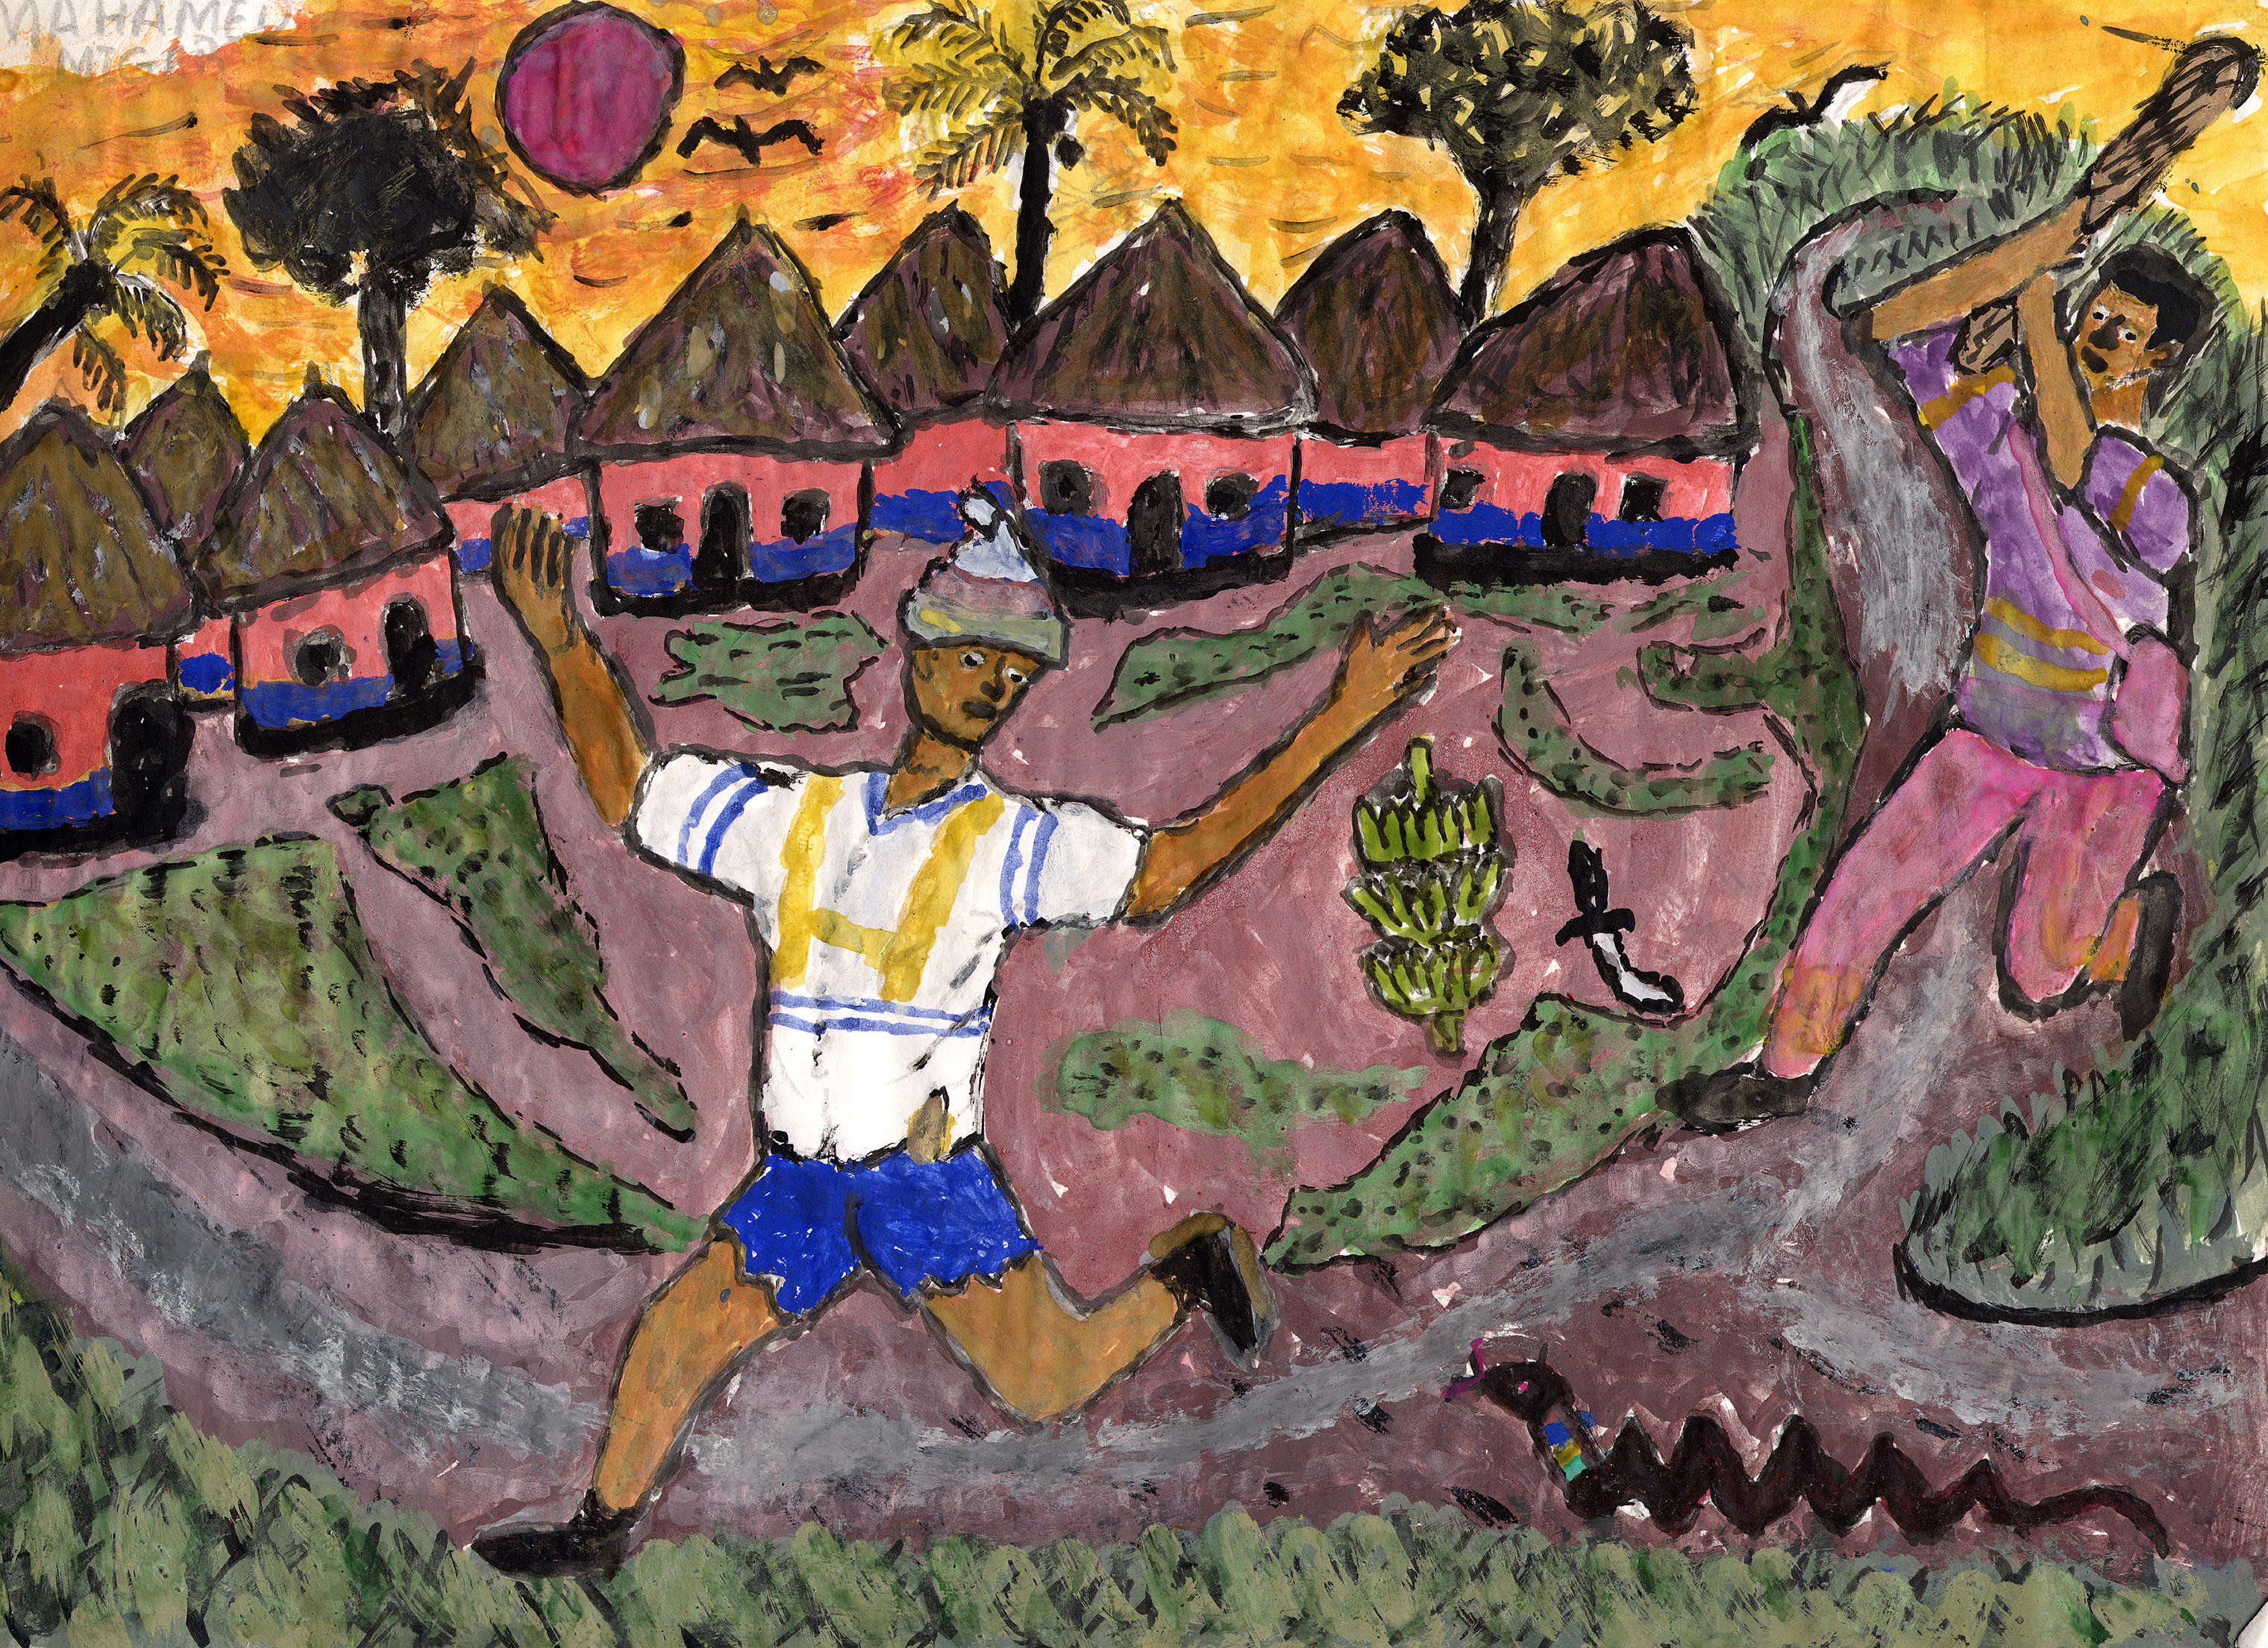 A drawing by a child in Sierra Leone, created around 2001.